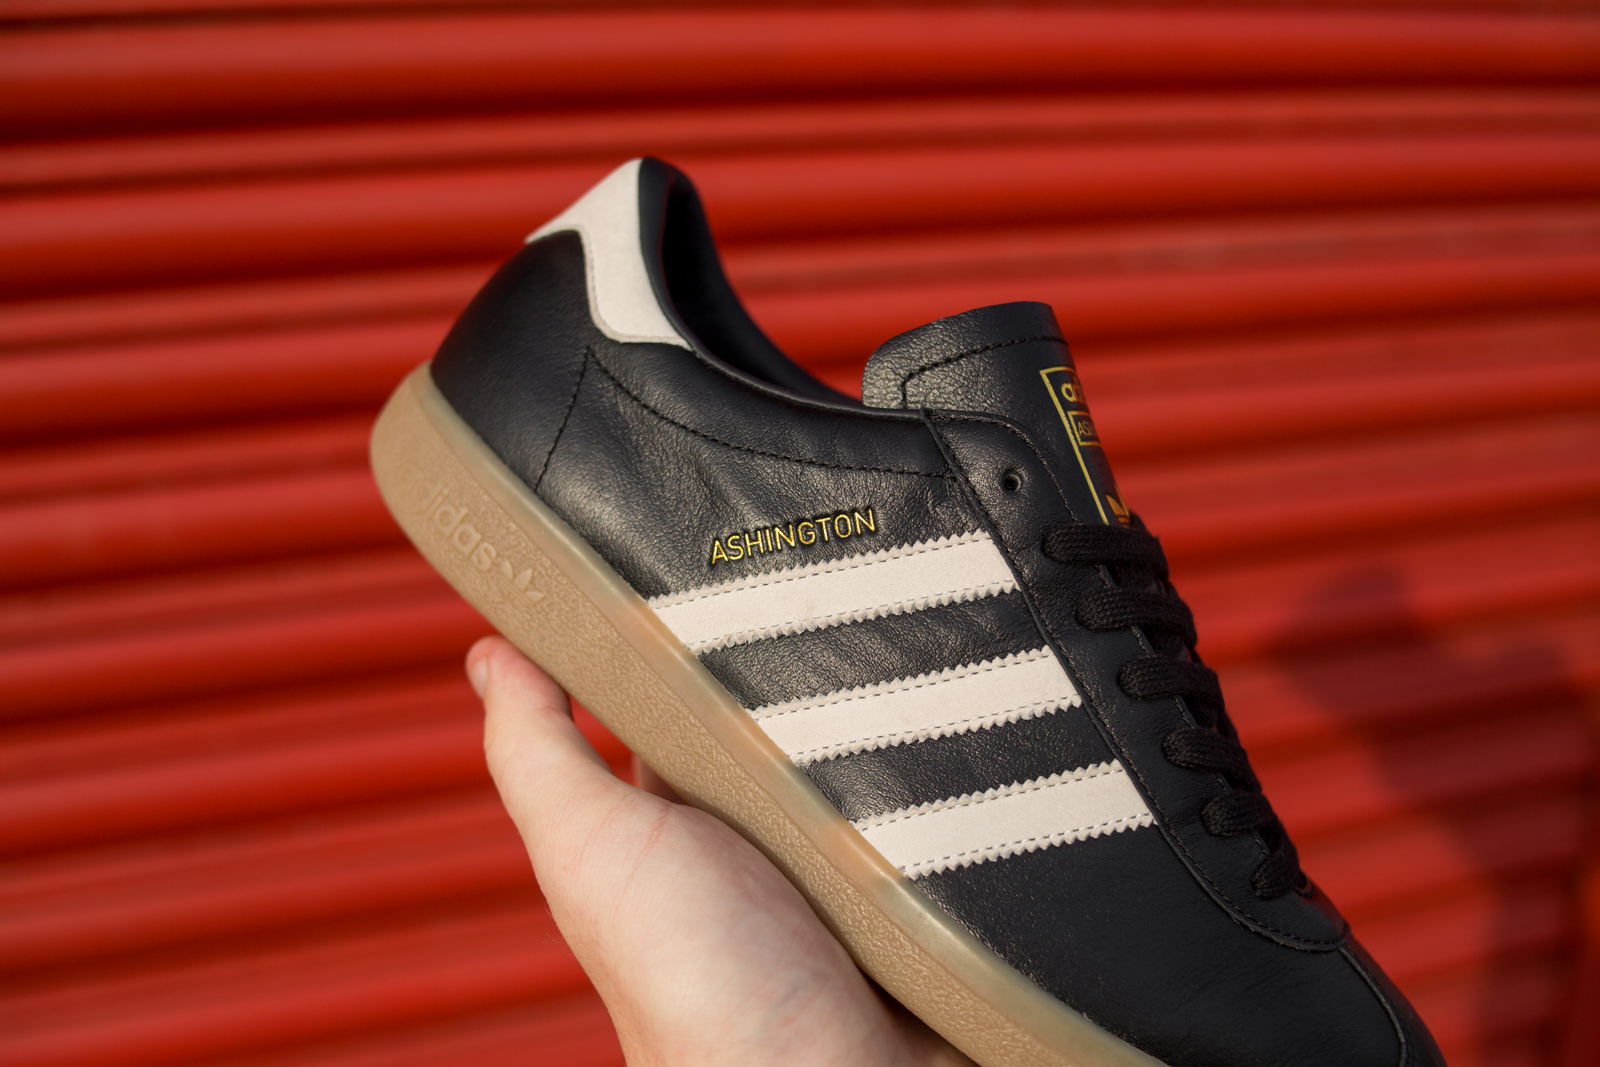 adidas Originals Ashington